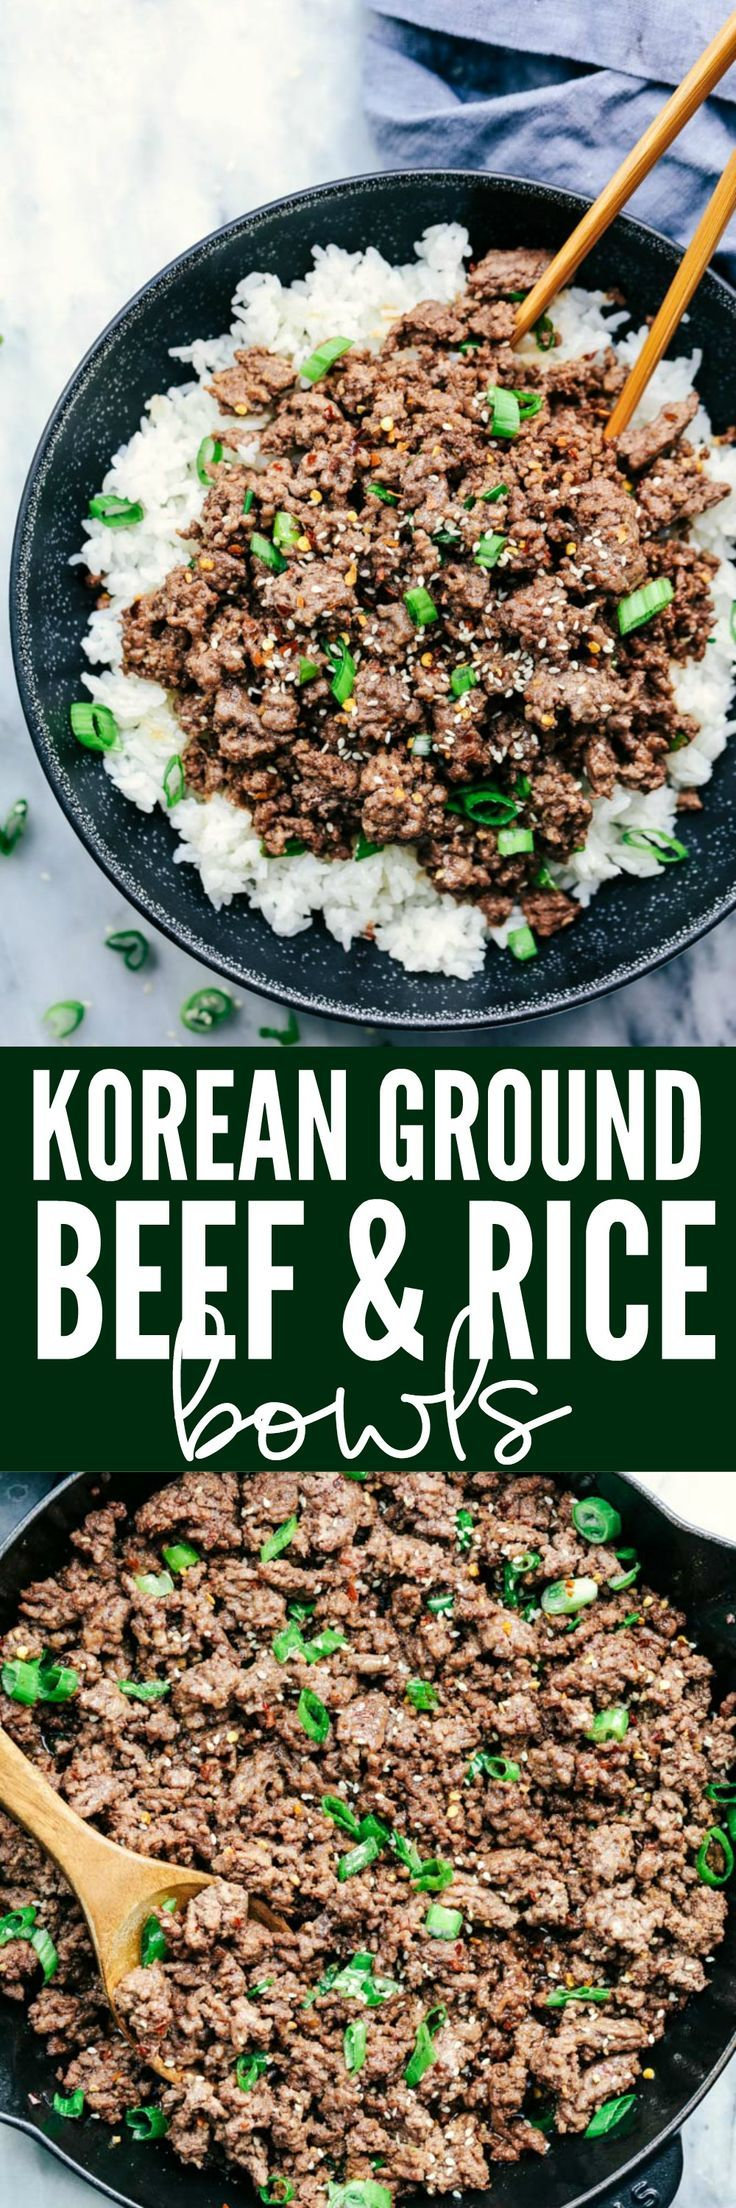 Korean Ground Beef and Rice Bowls are so incredibly easy to make and will become a family favorite! This makes the perfect weeknight meal.